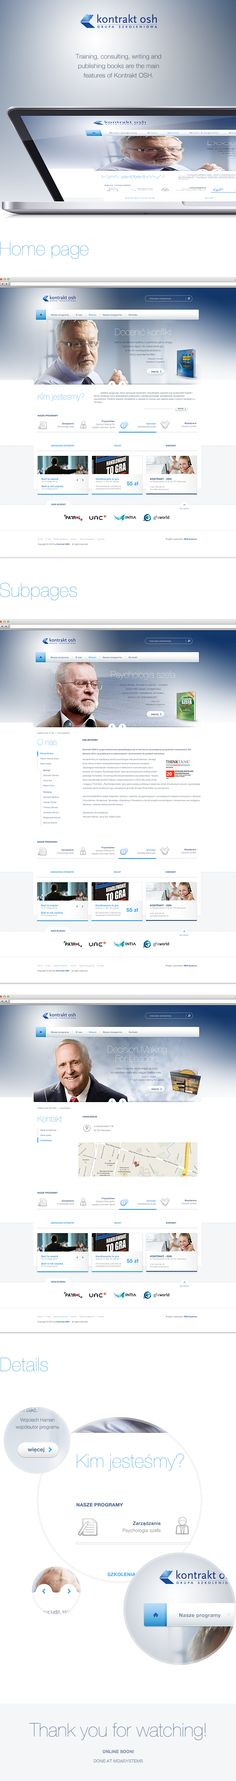 Kontrakt OSH by Michał Kubalczyk, via Behance#clean #corporate